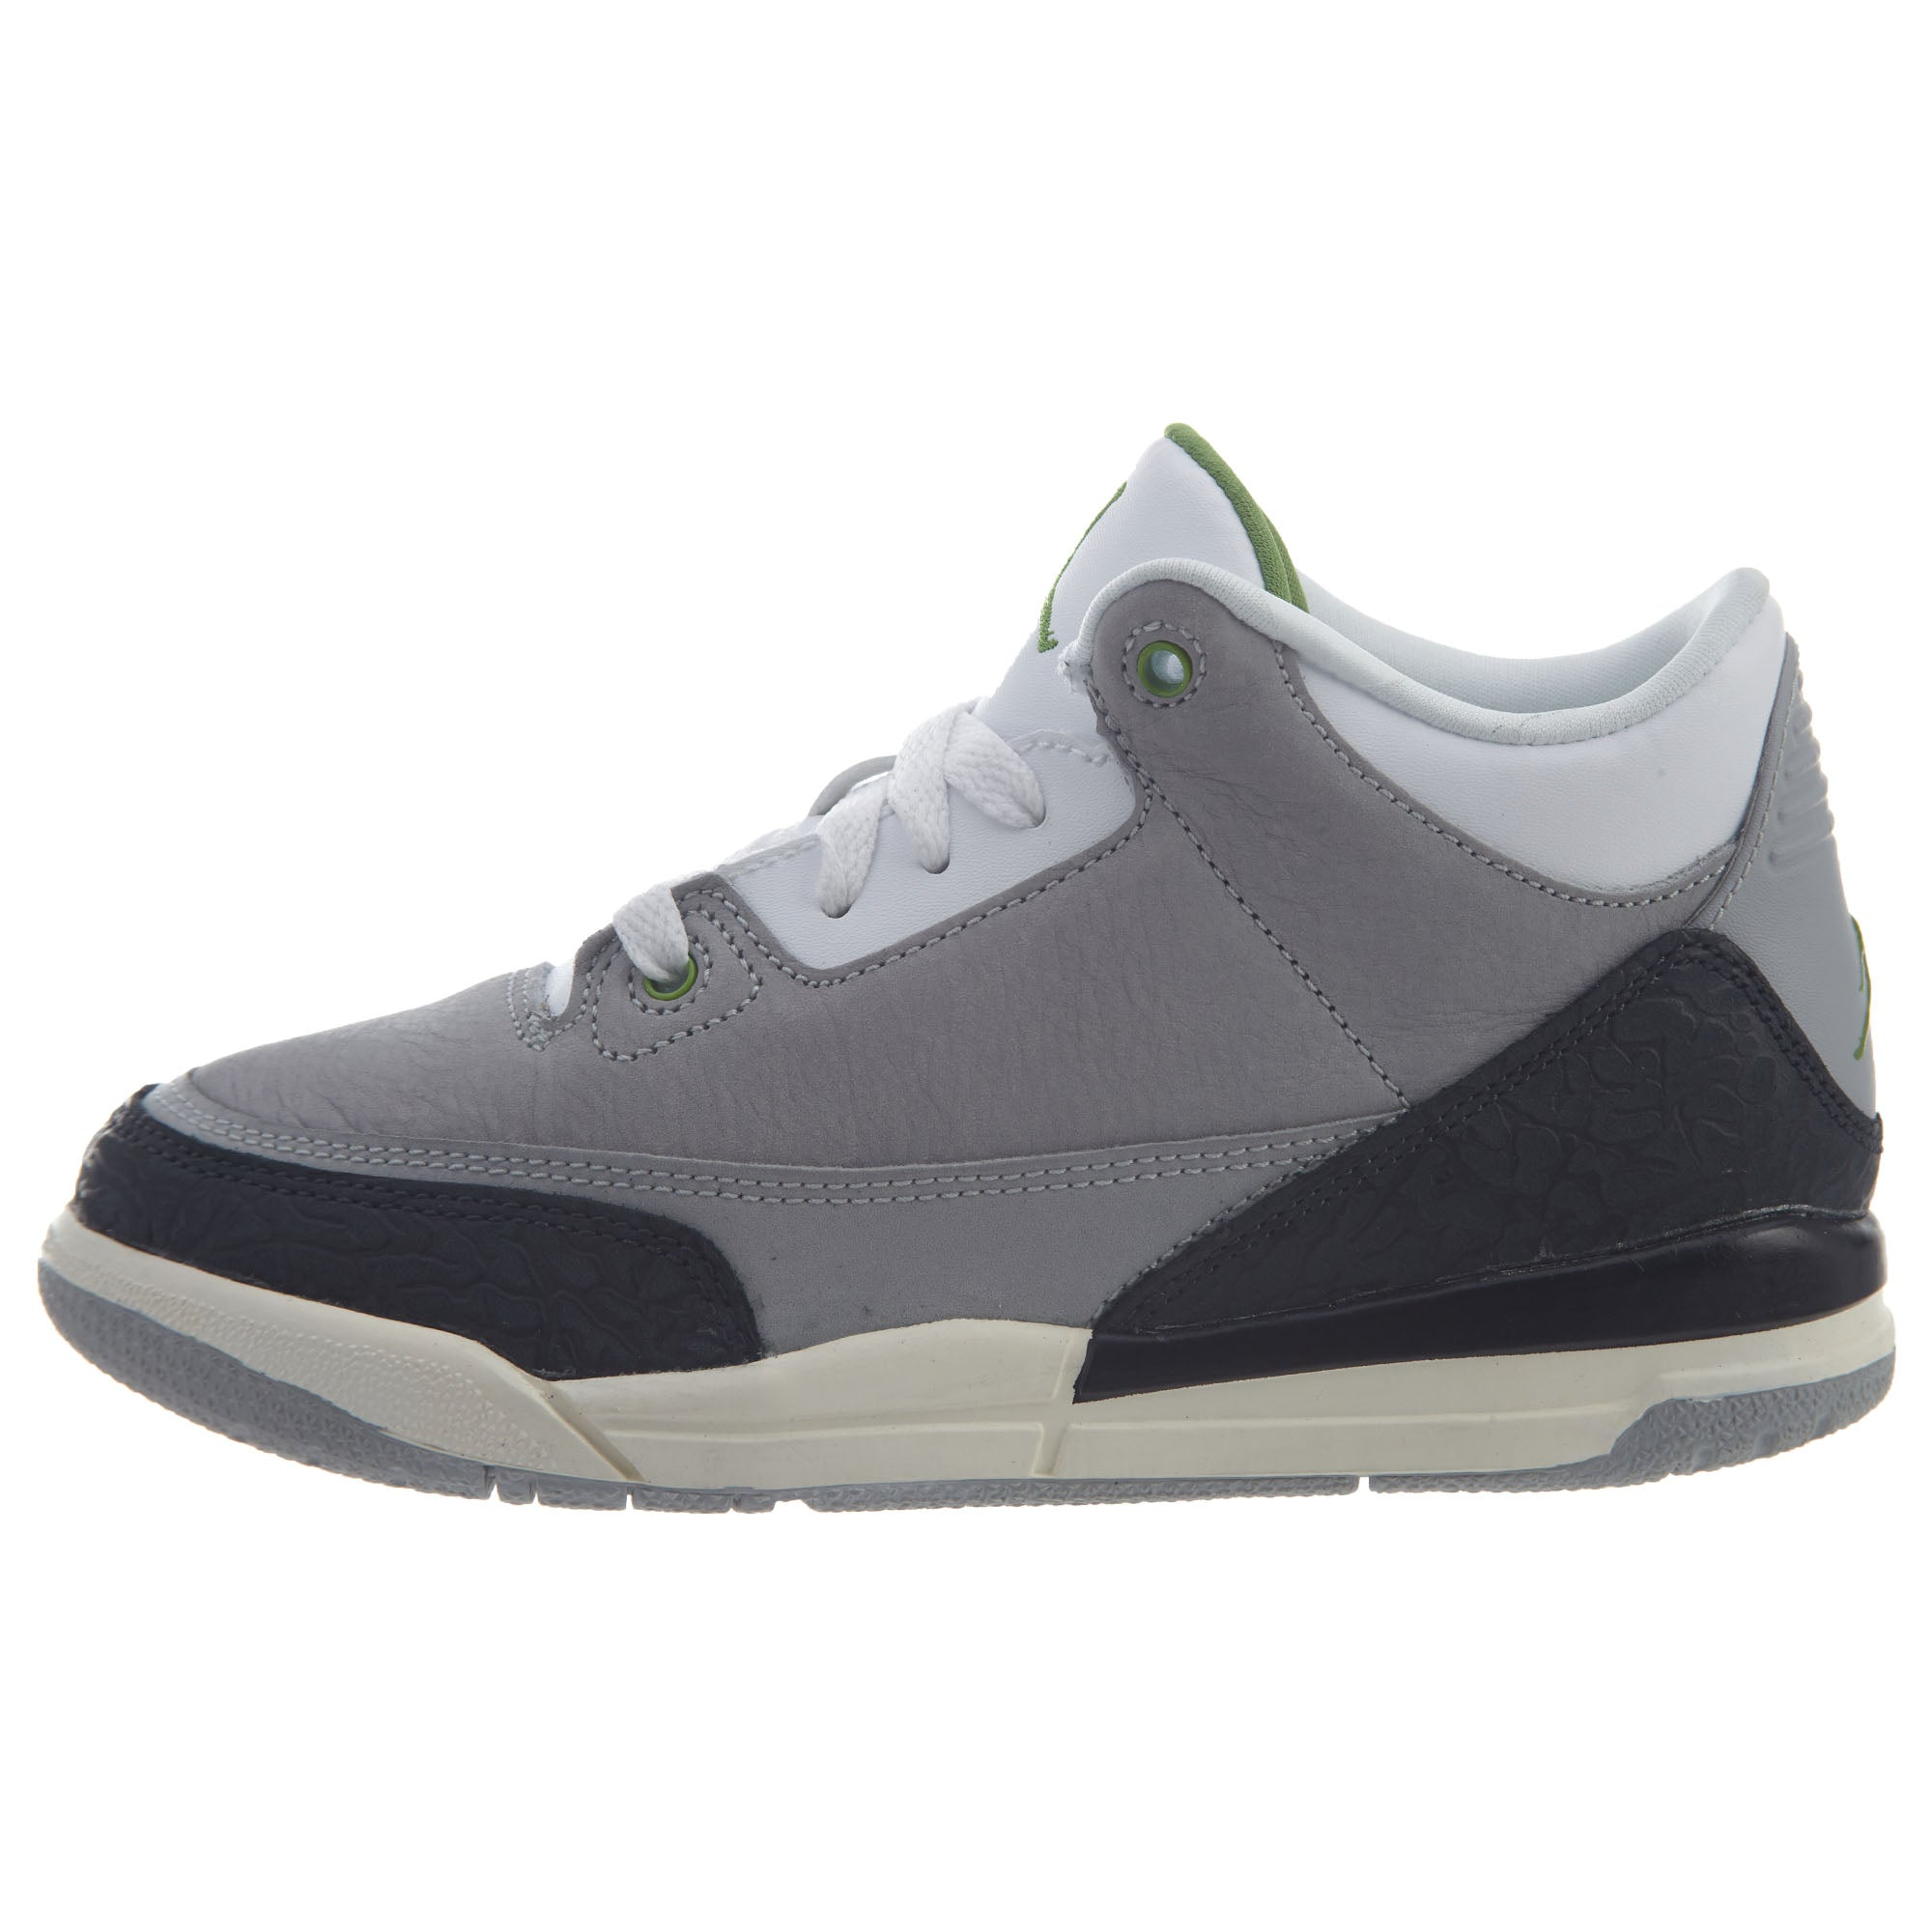 Jordan 3 Retro Little Kids Style : 429487-006